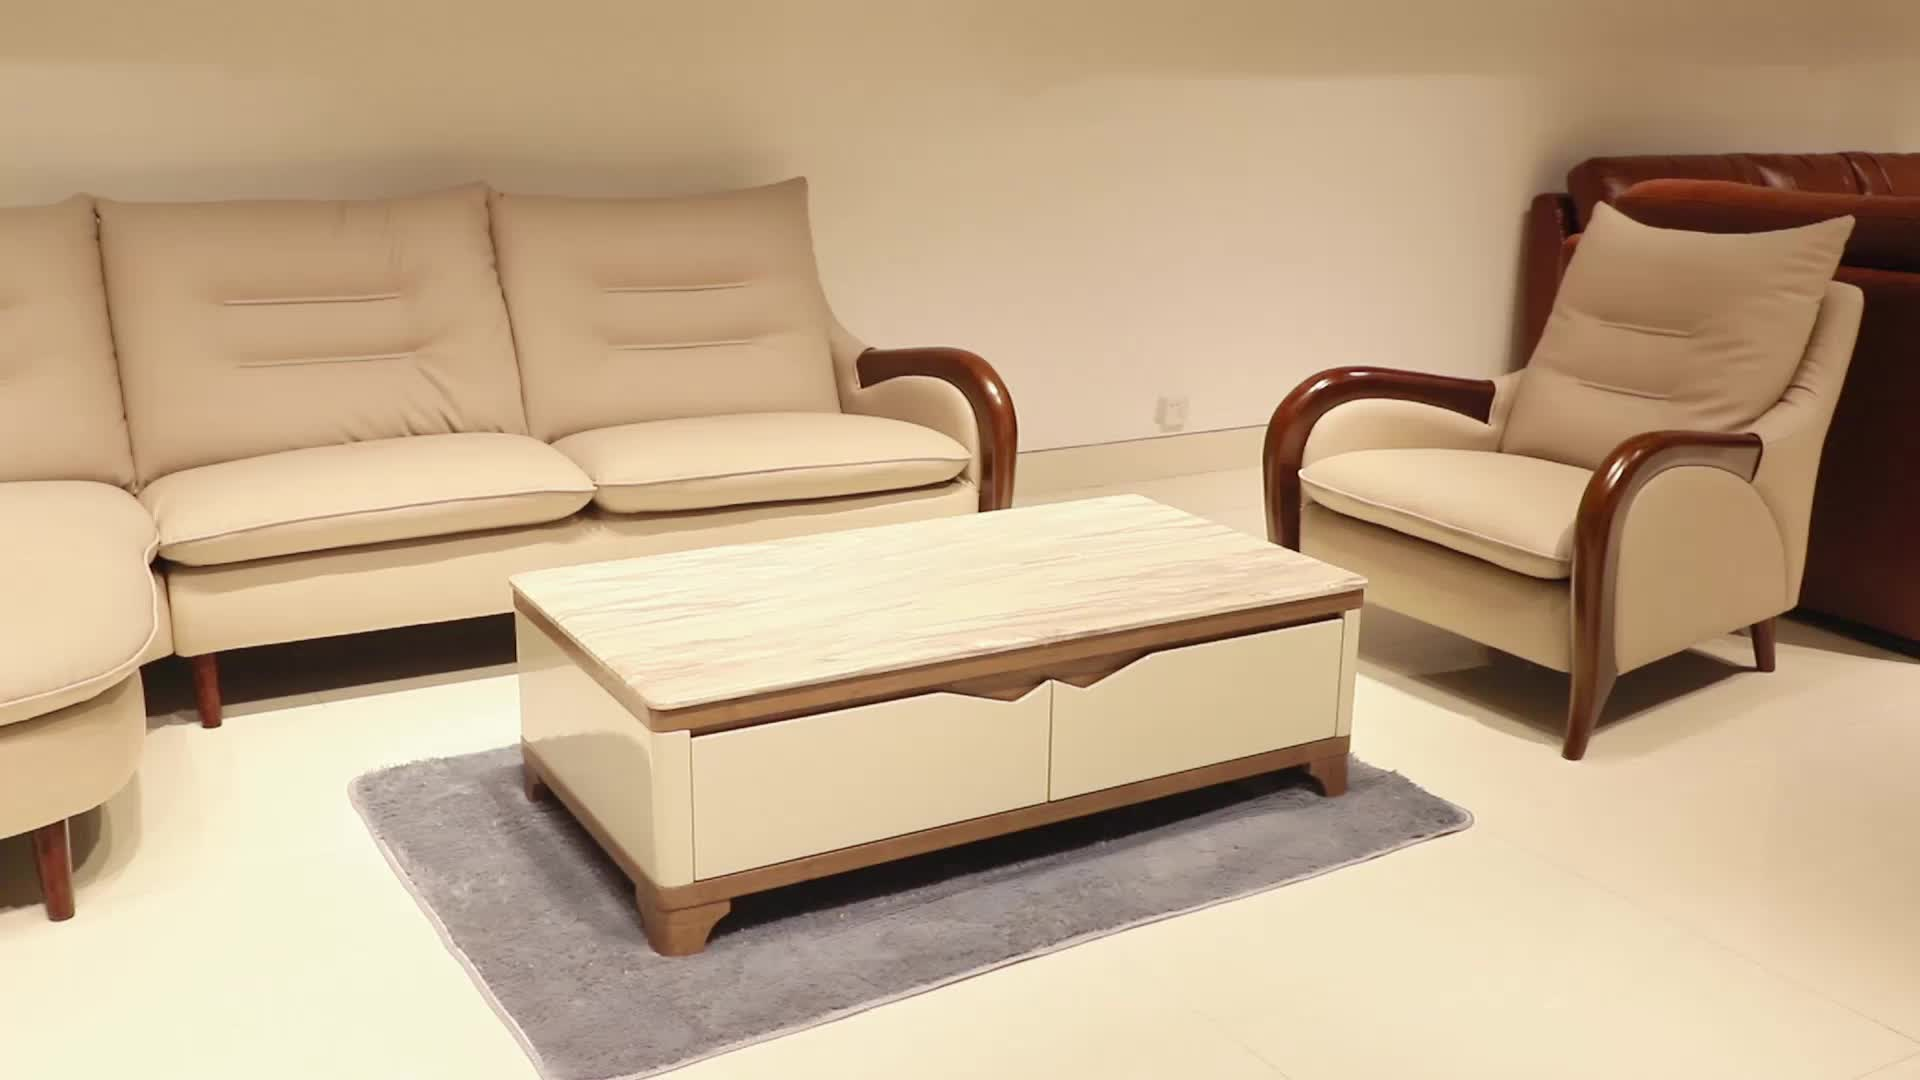 Wholesale Discount Modern Living Room Small Cheap Leather Sectional Sofa, Italian Leather Sectional Sofa